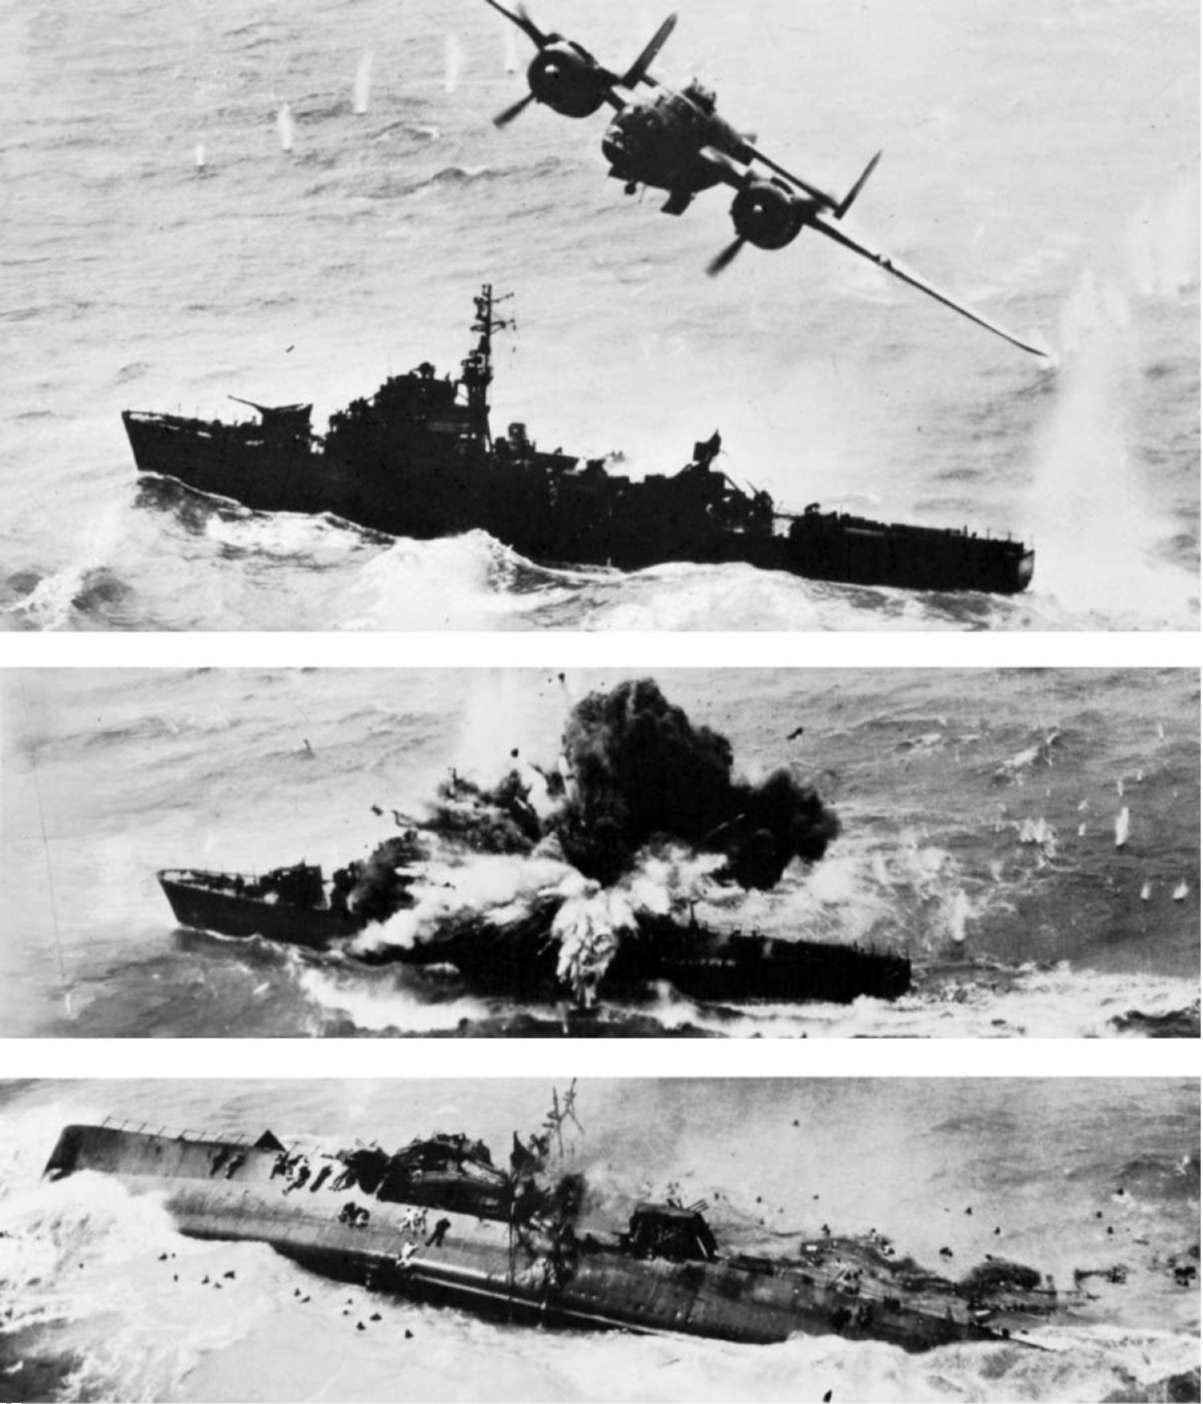 USAAF+B-25+sinks+Japanese+destroyer+Amat